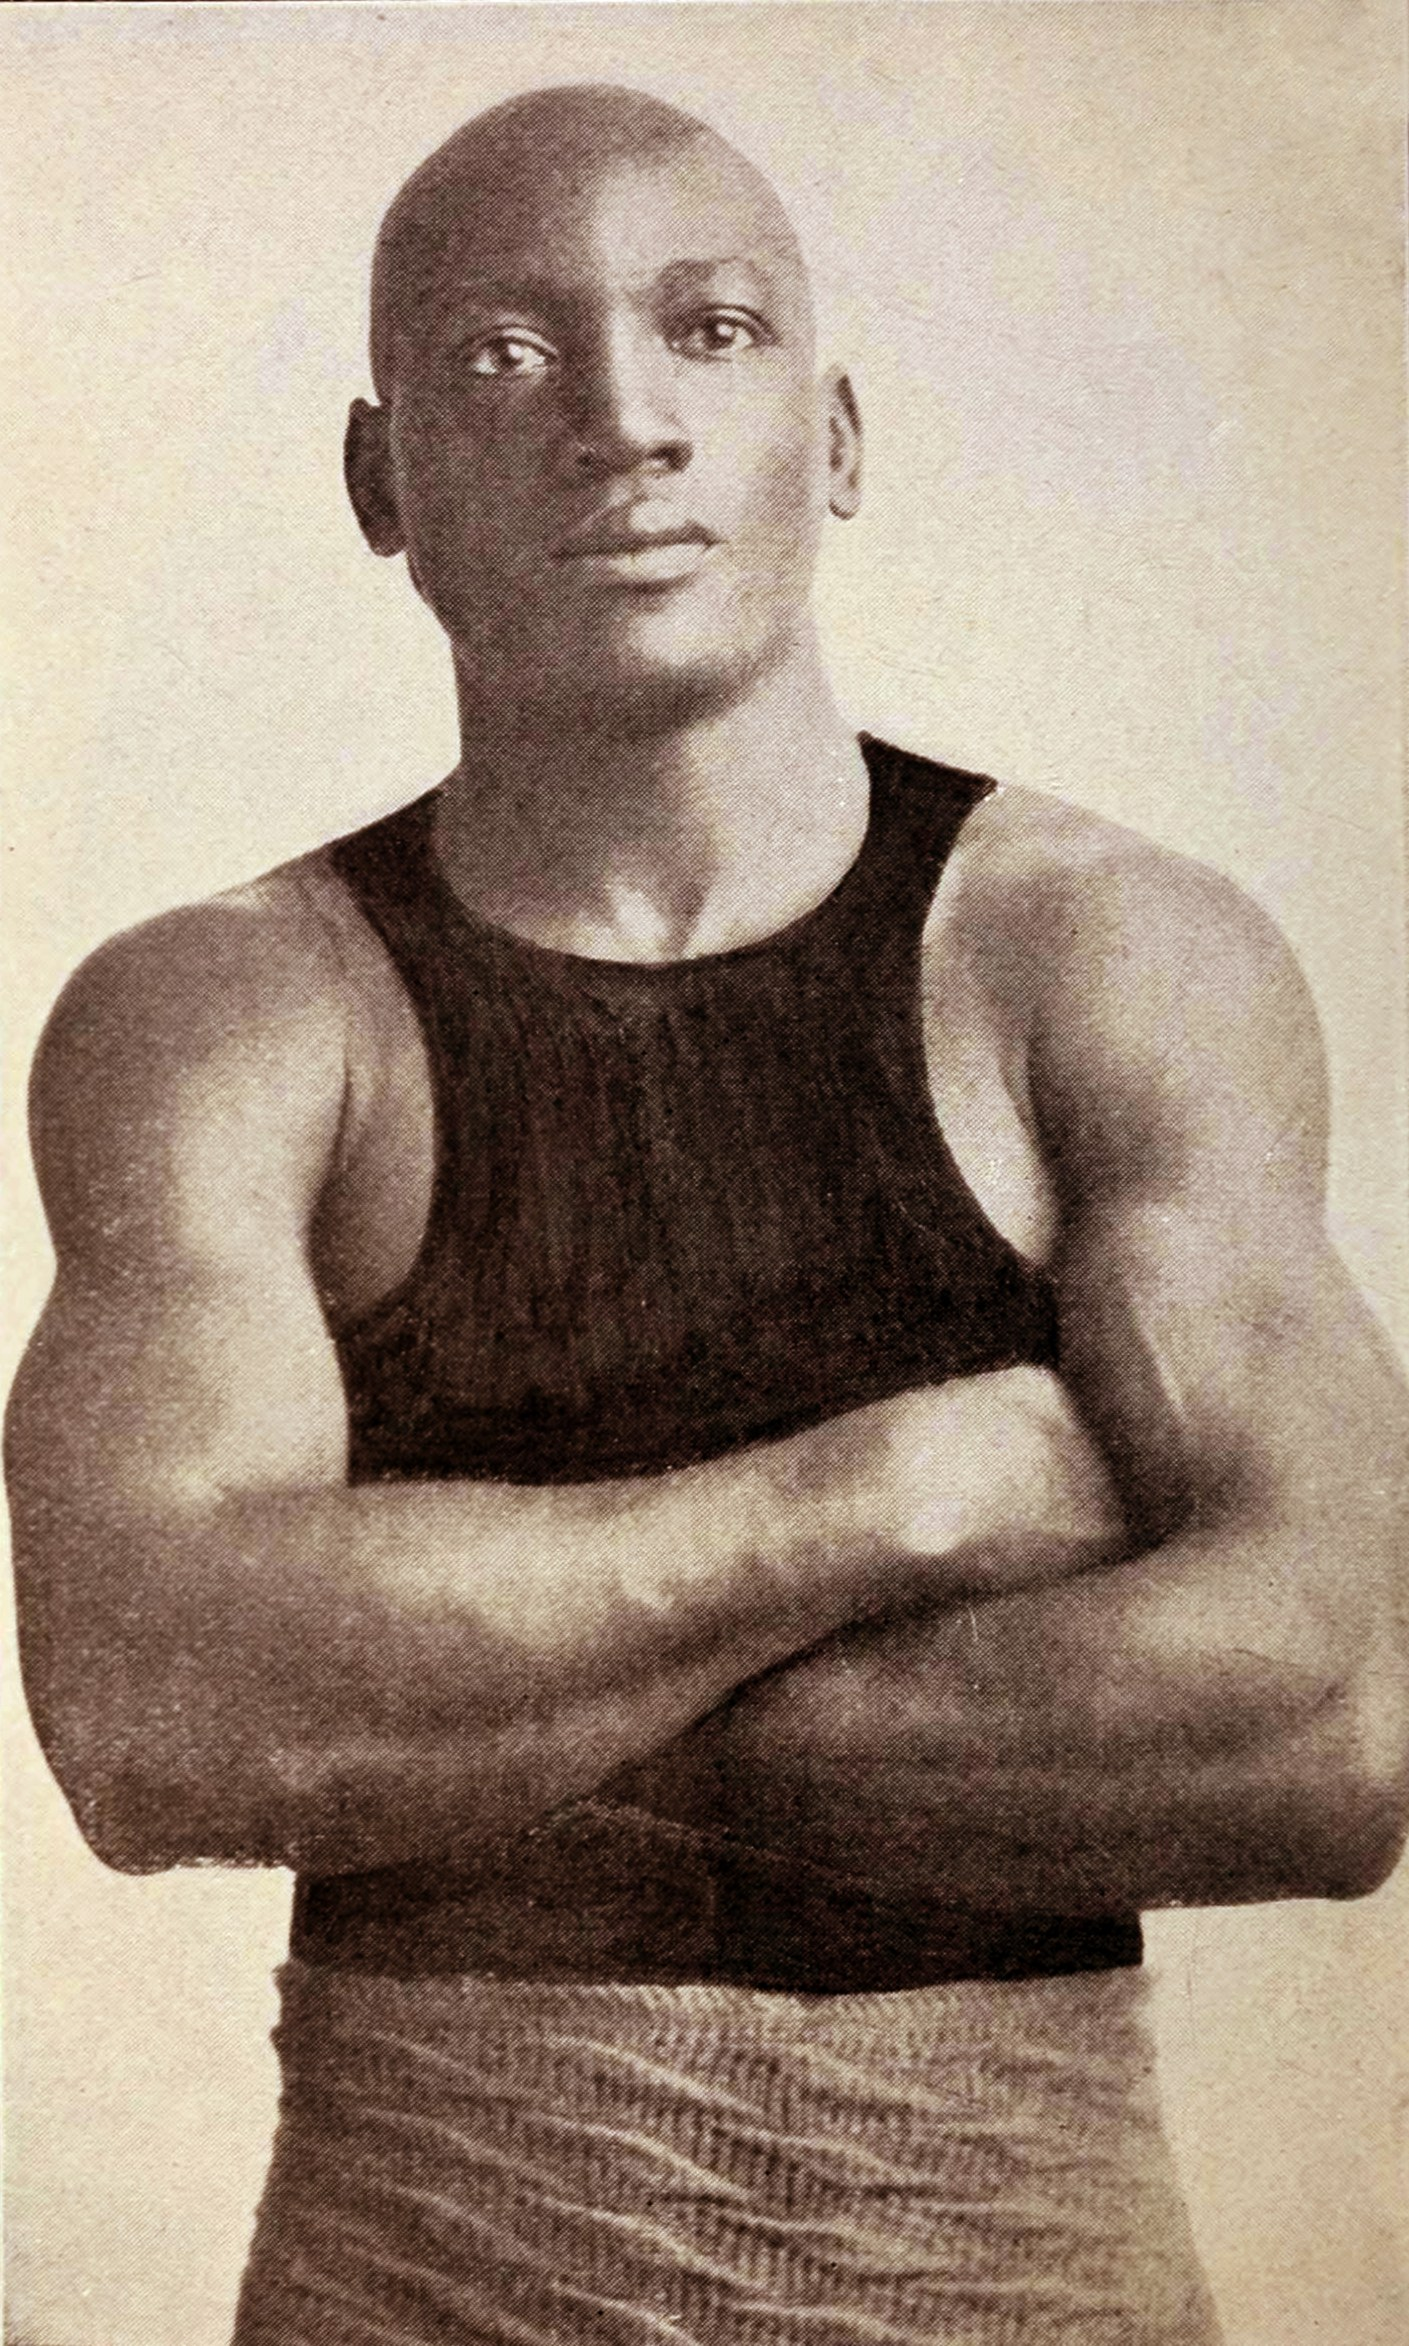 Jack_Johnson_boxer_c1908.jpg